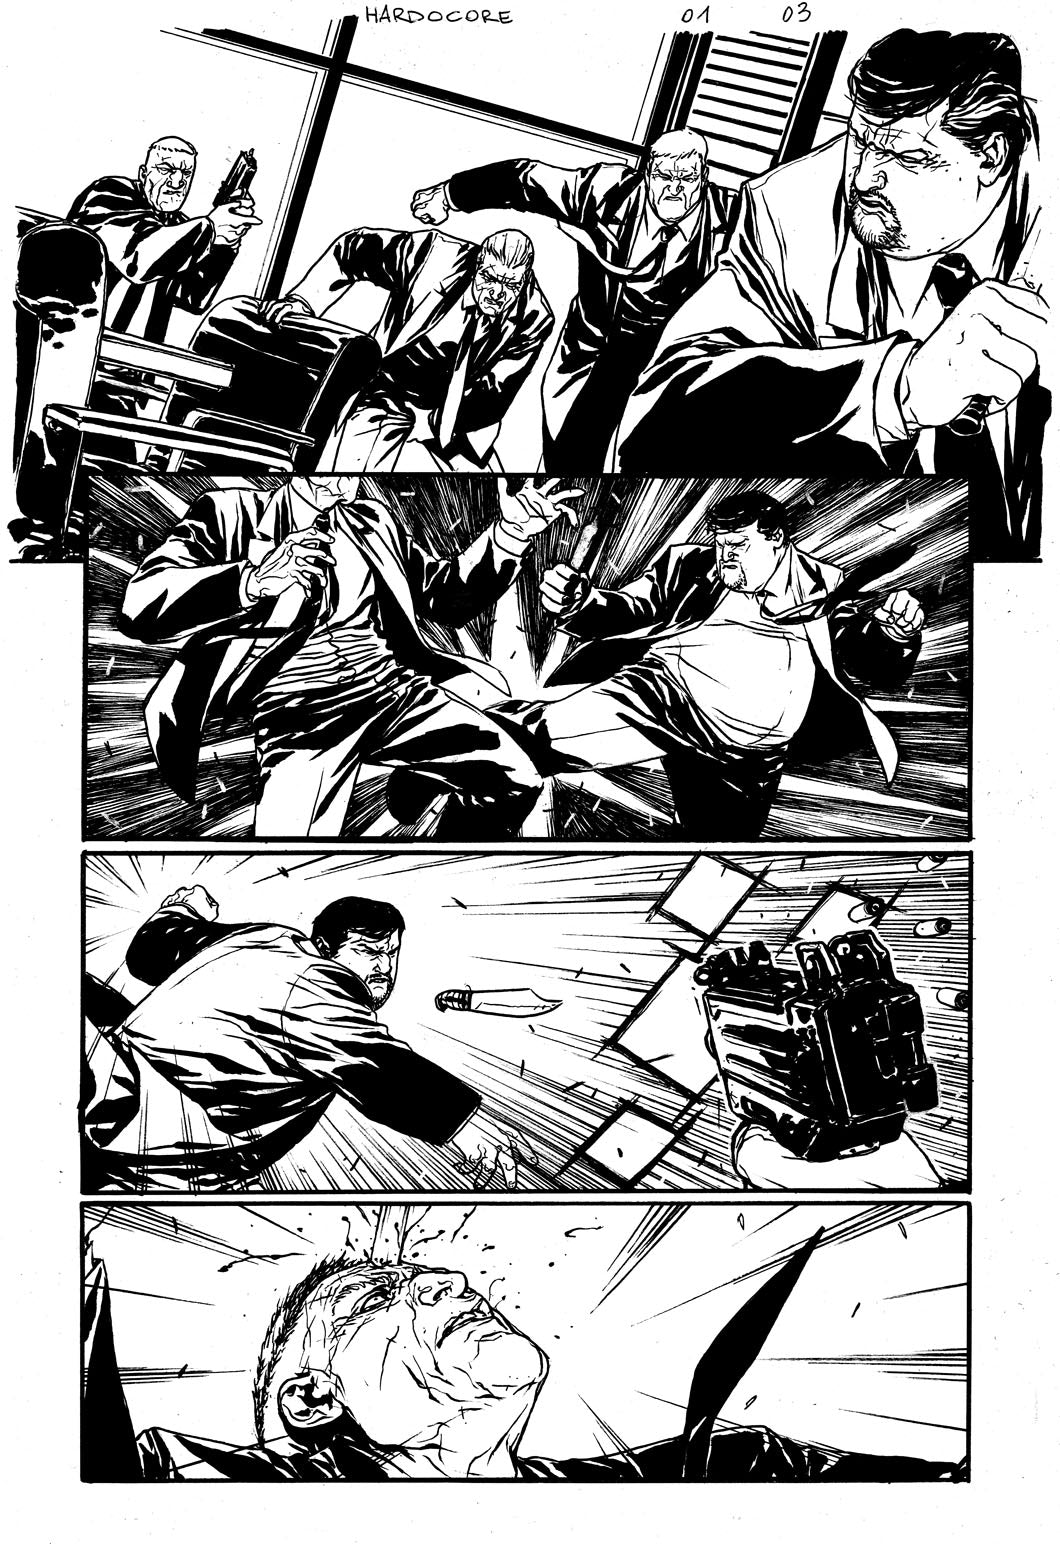 Hardcore #1 Original art - Page 03 by Alessandro Vitti